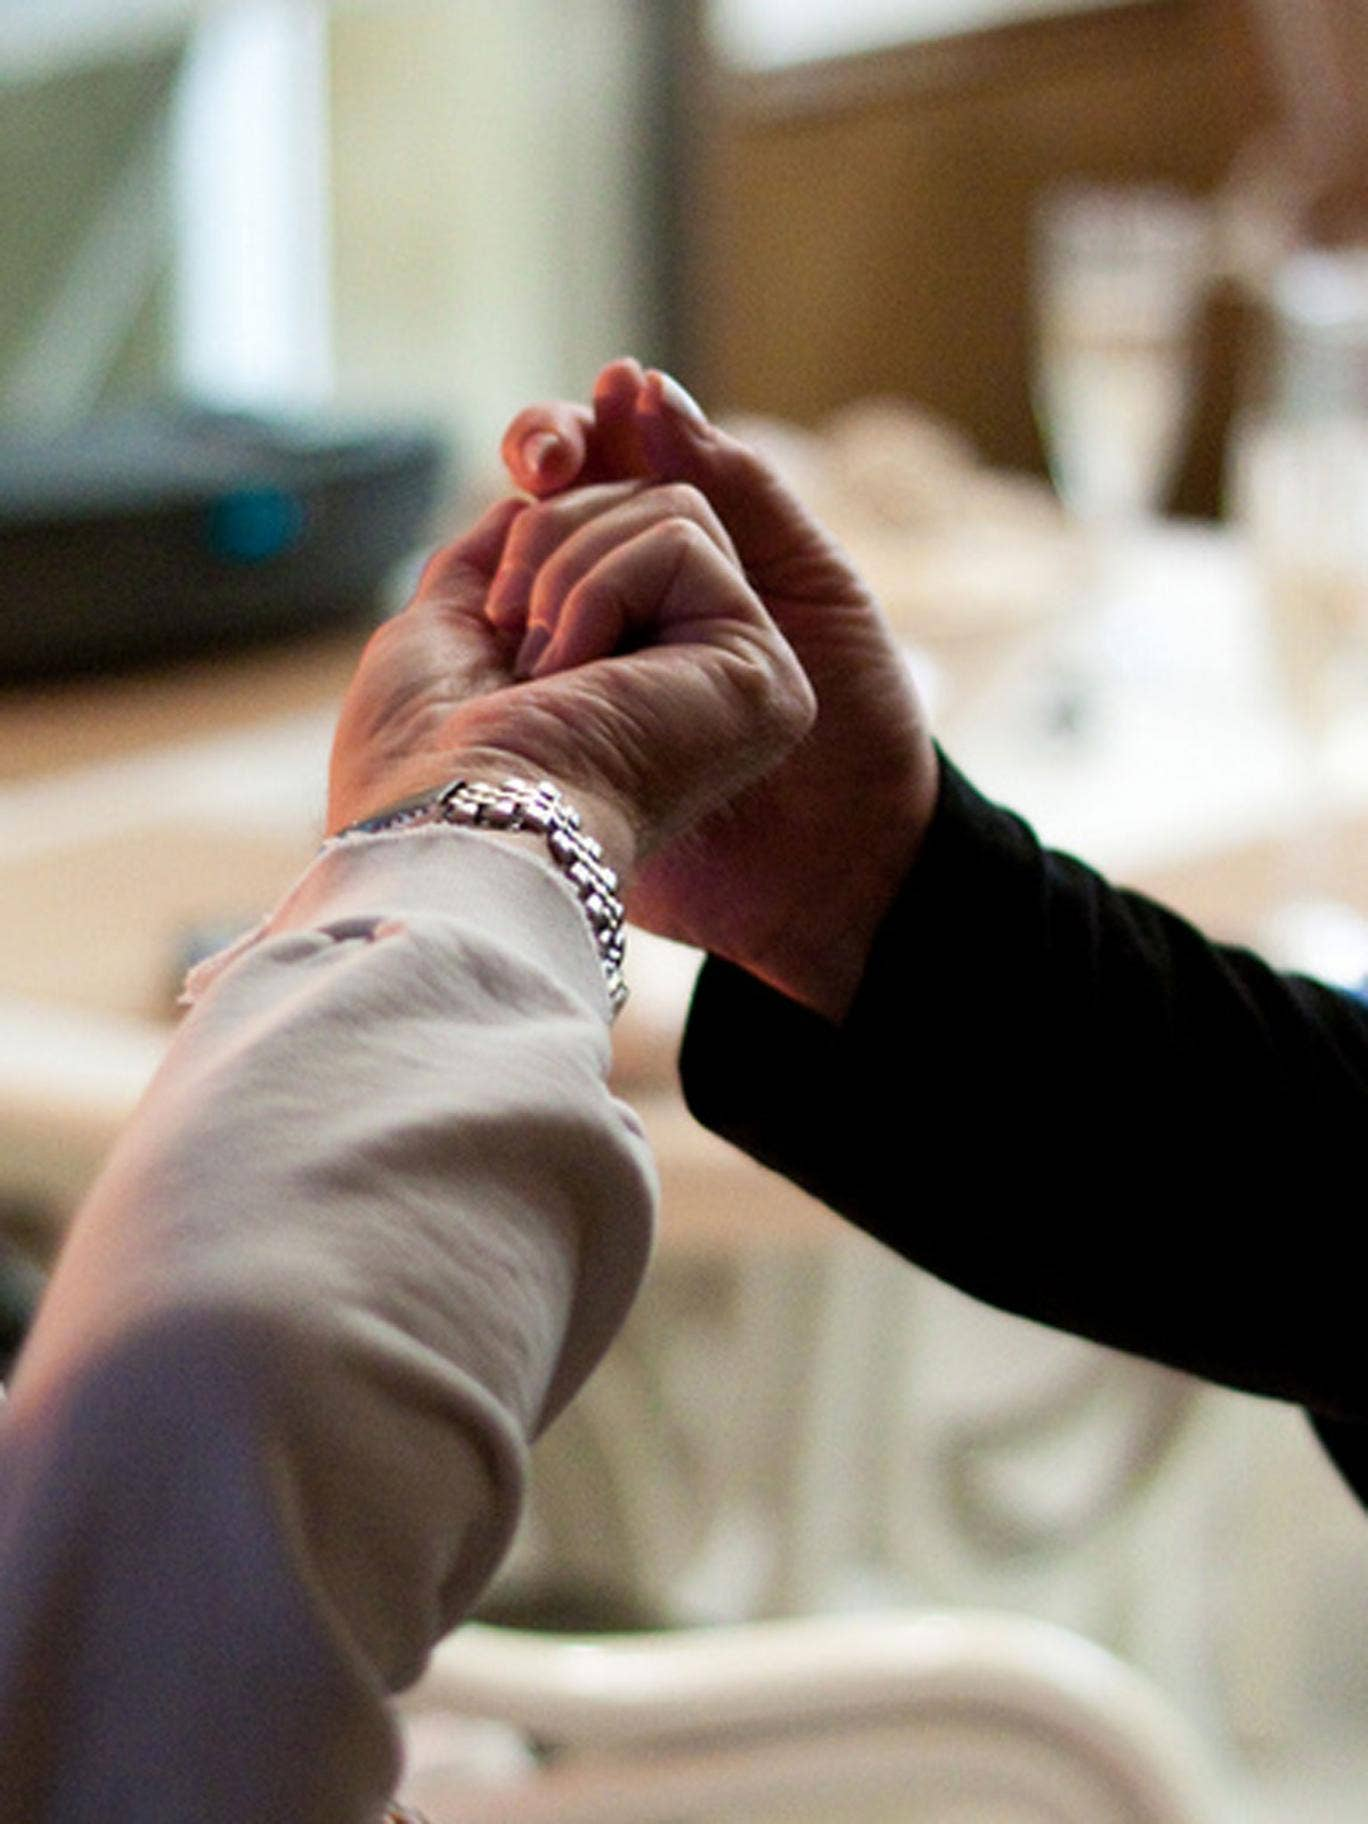 The study found that people are more likely to die in the first 3o days after losing a partner